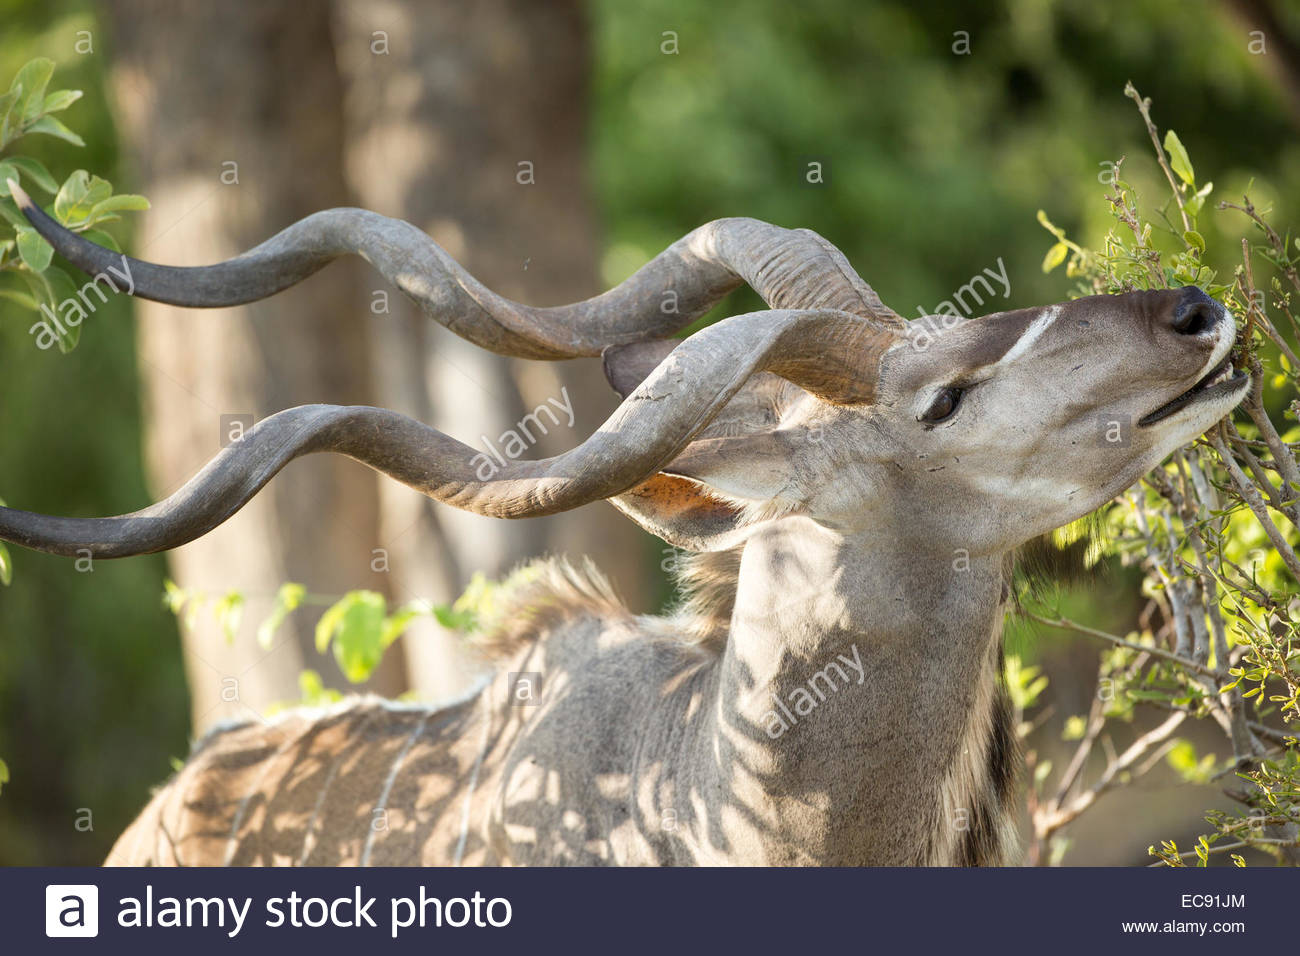 Greater Kudu, Okavango Delta, Botswana Stock Photo